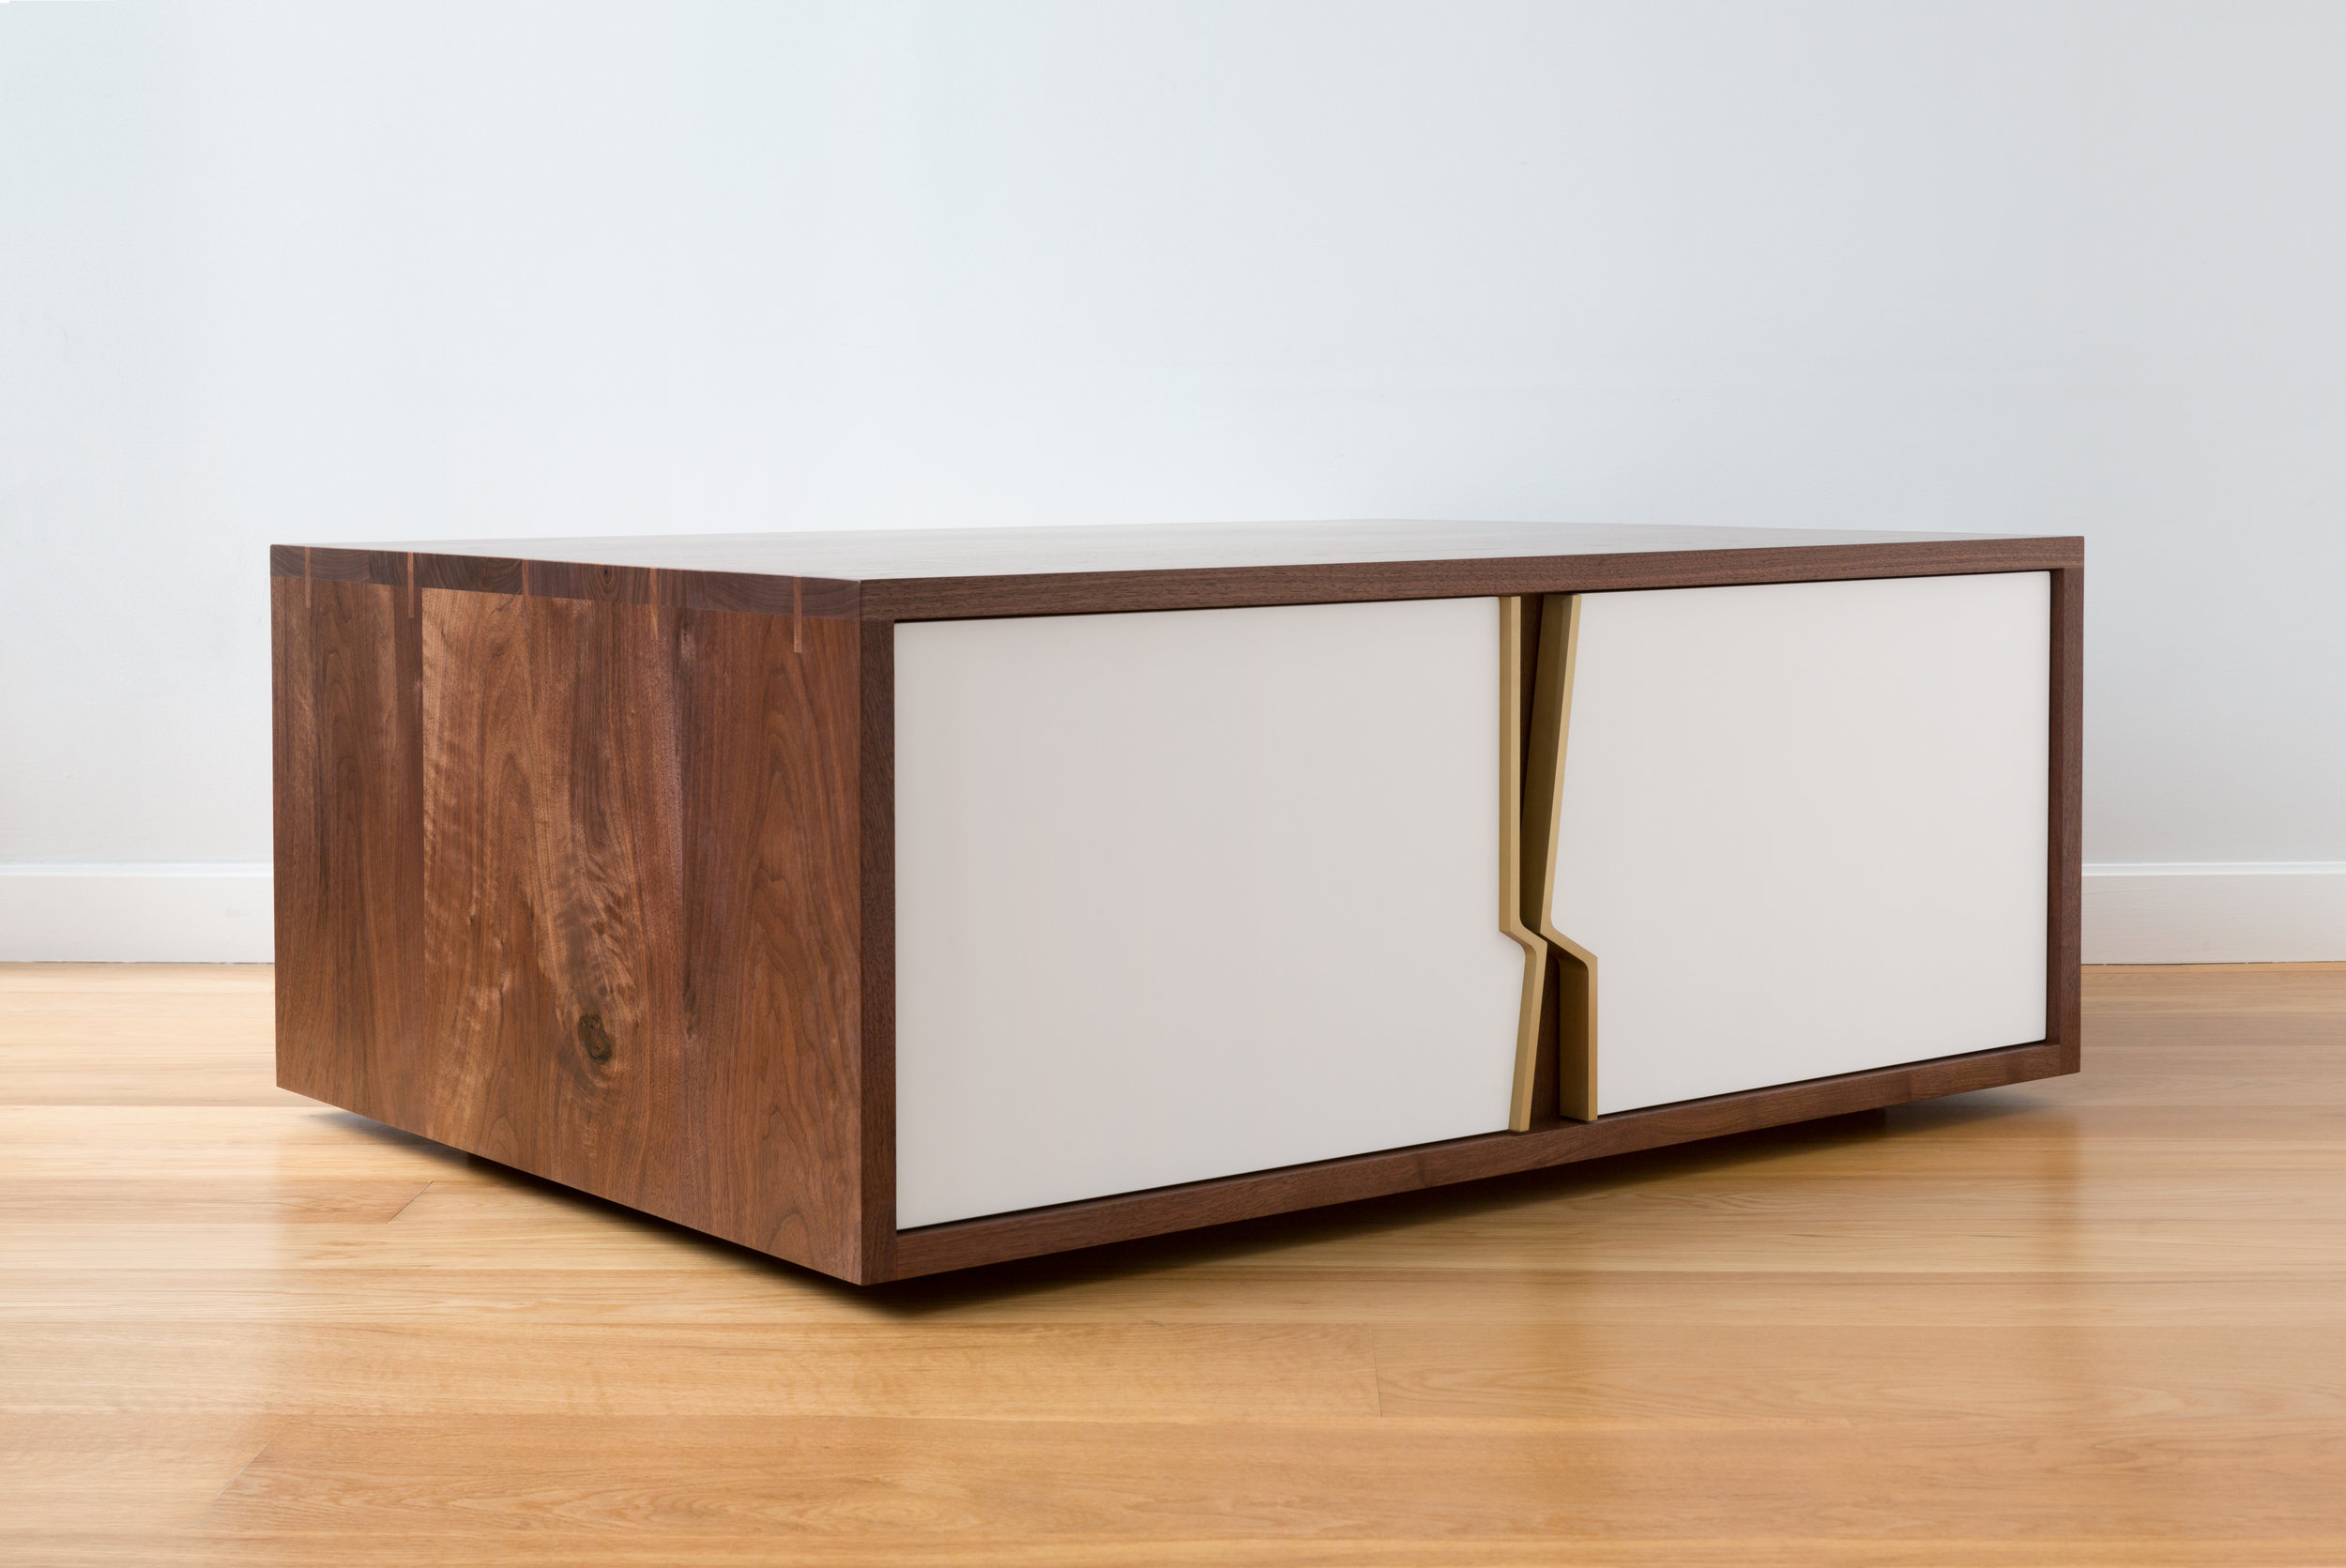 HALSEY FRACTURE COFFEE TABLE